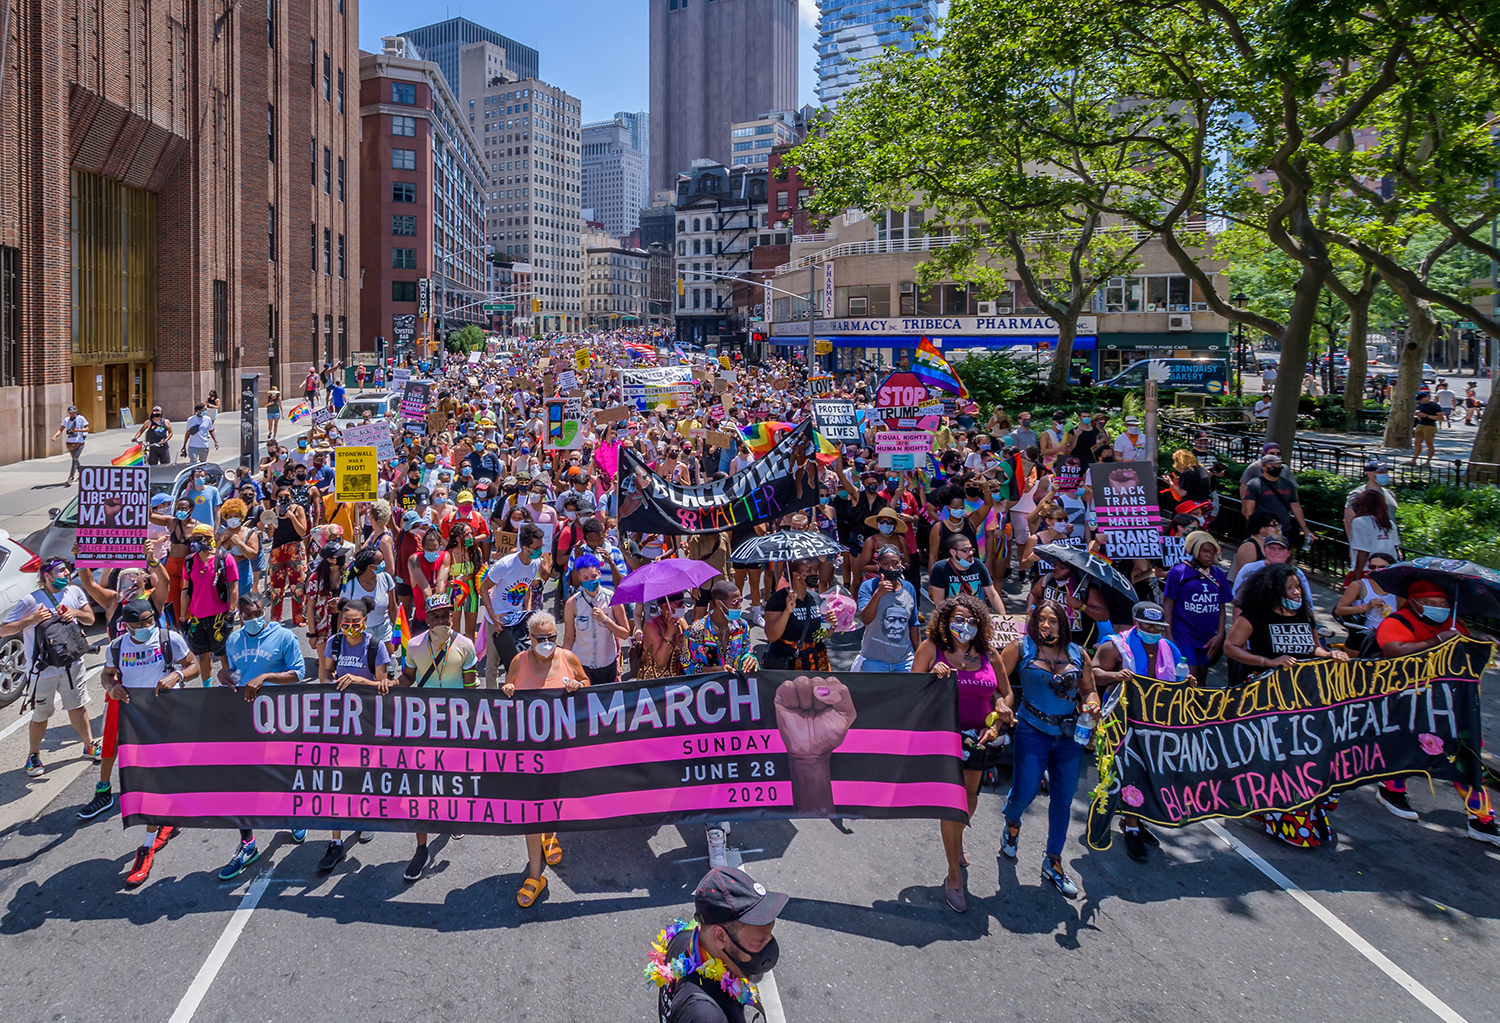 """Queer Liberation March the """"Queer Liberation March for Black Lives and Against Police Brutality"""""""